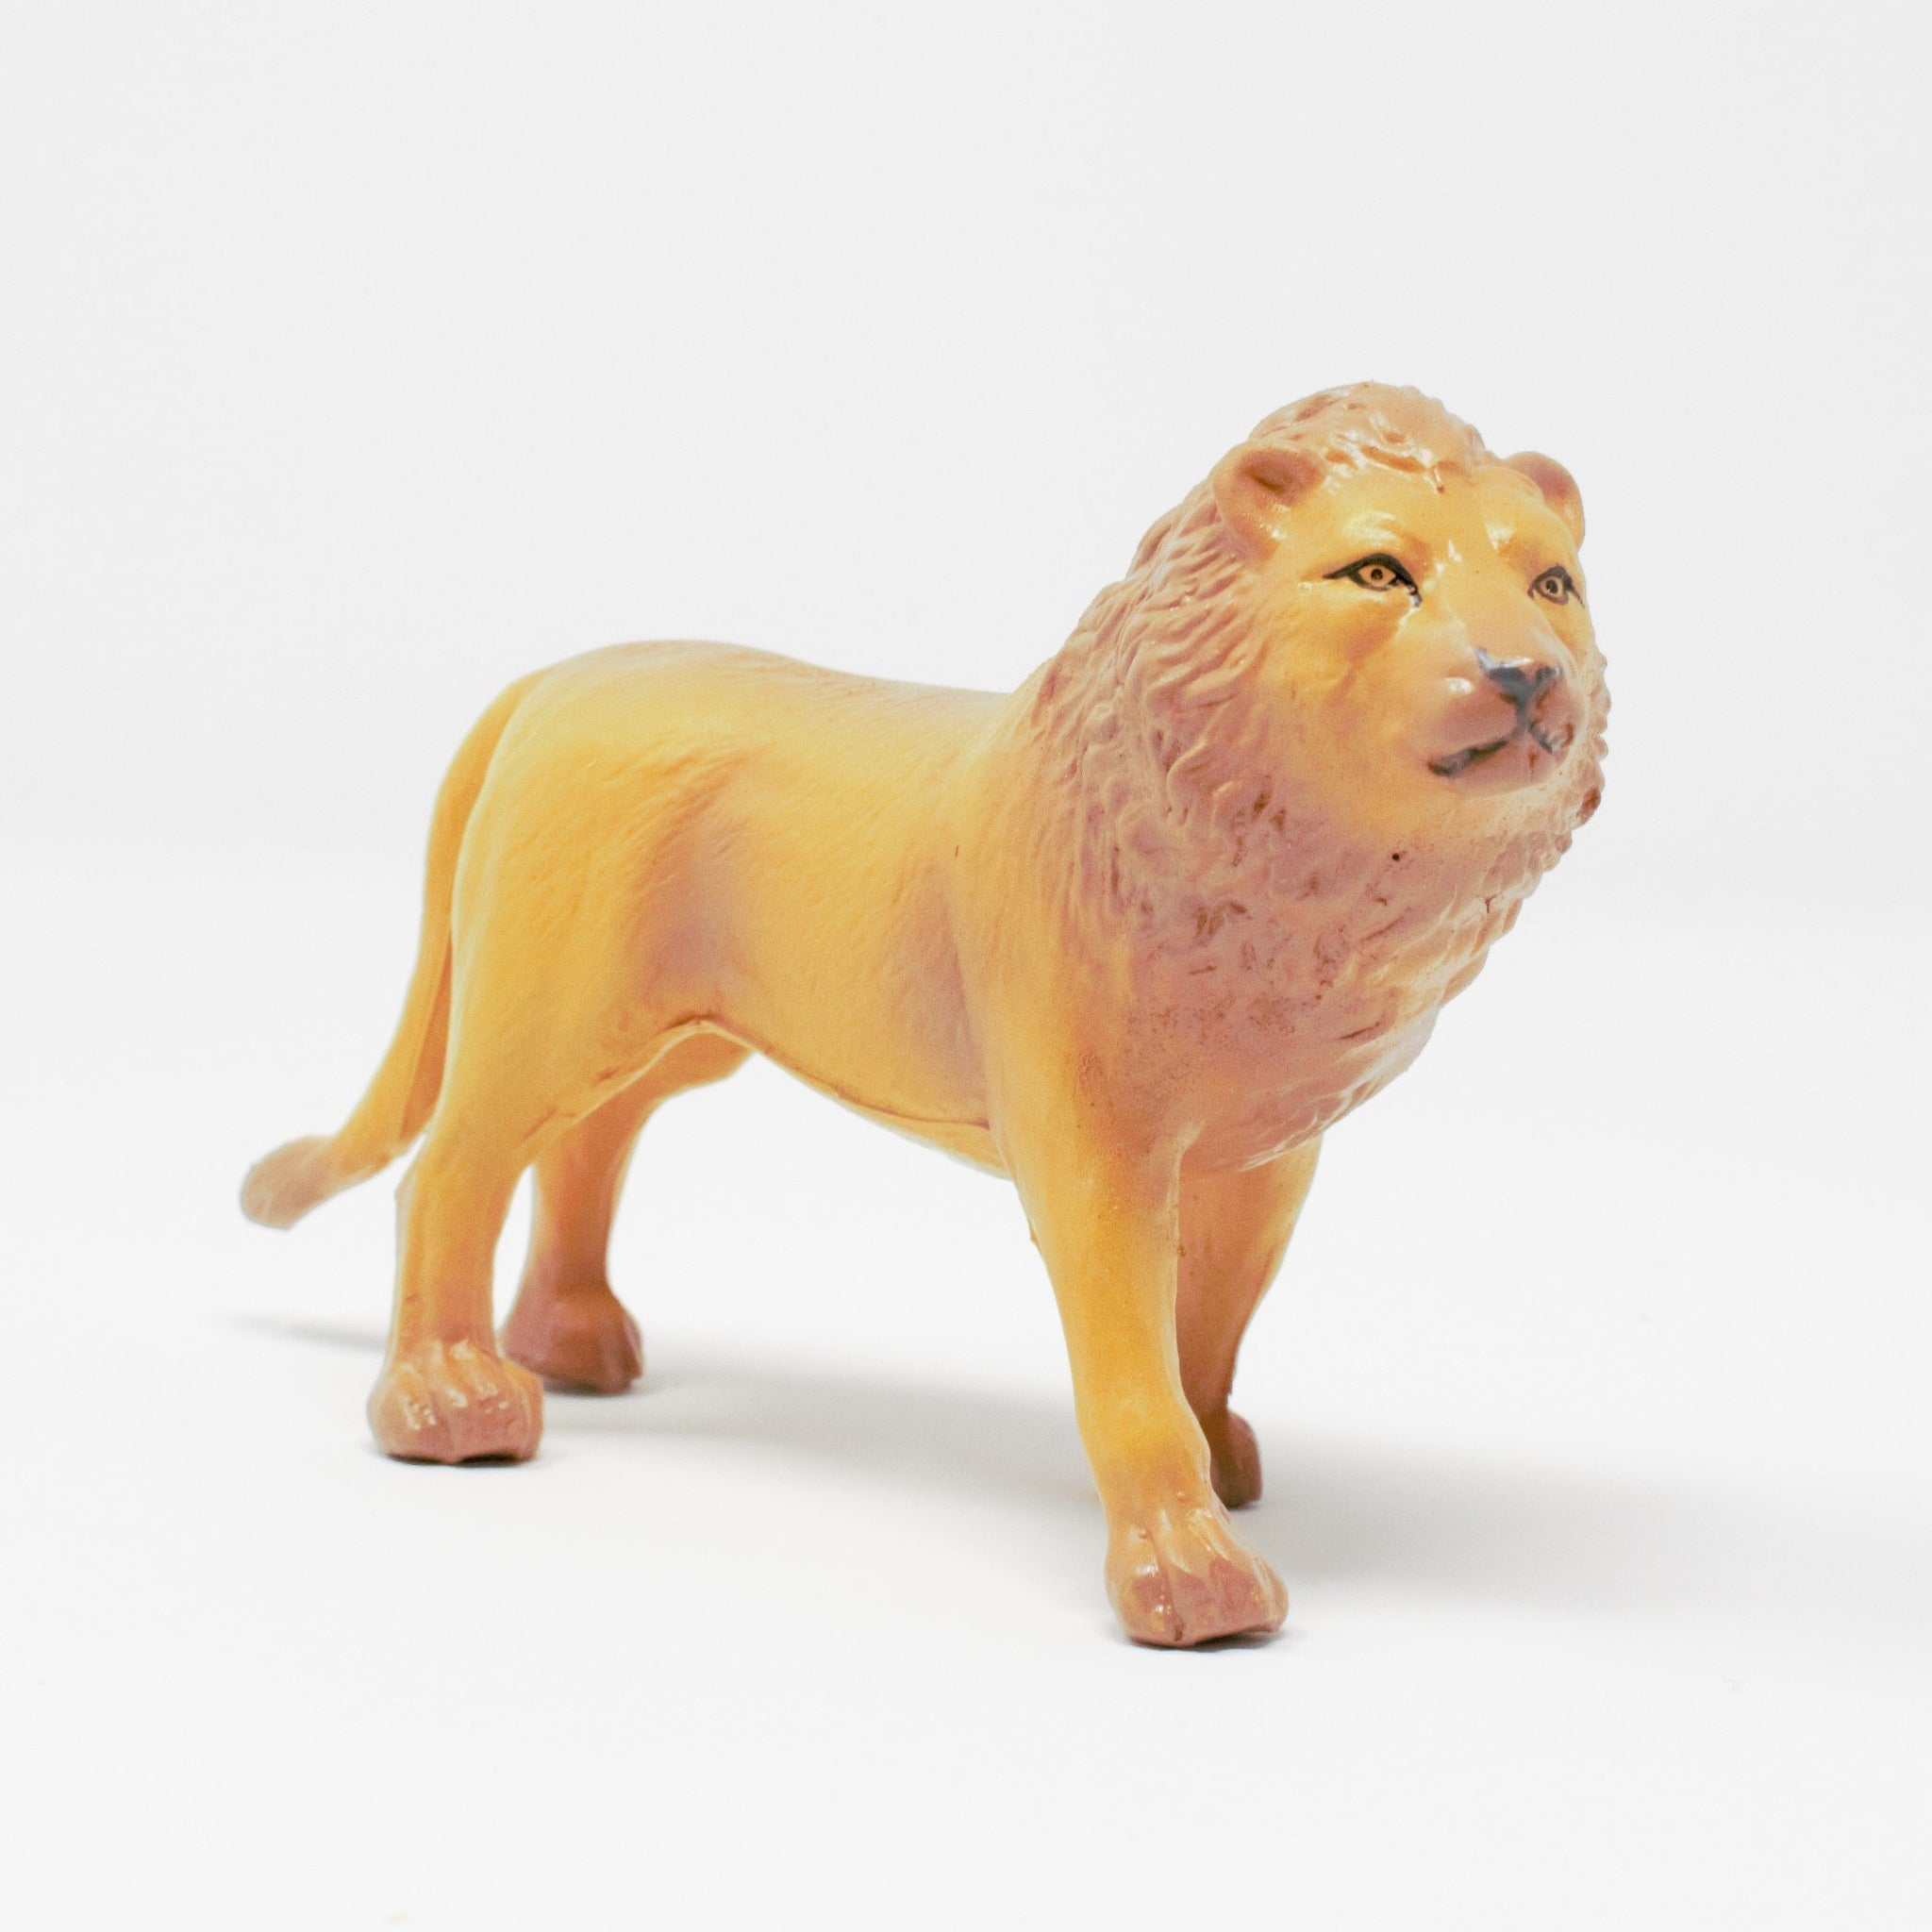 Green Rubber Toys Lion - Smallkind